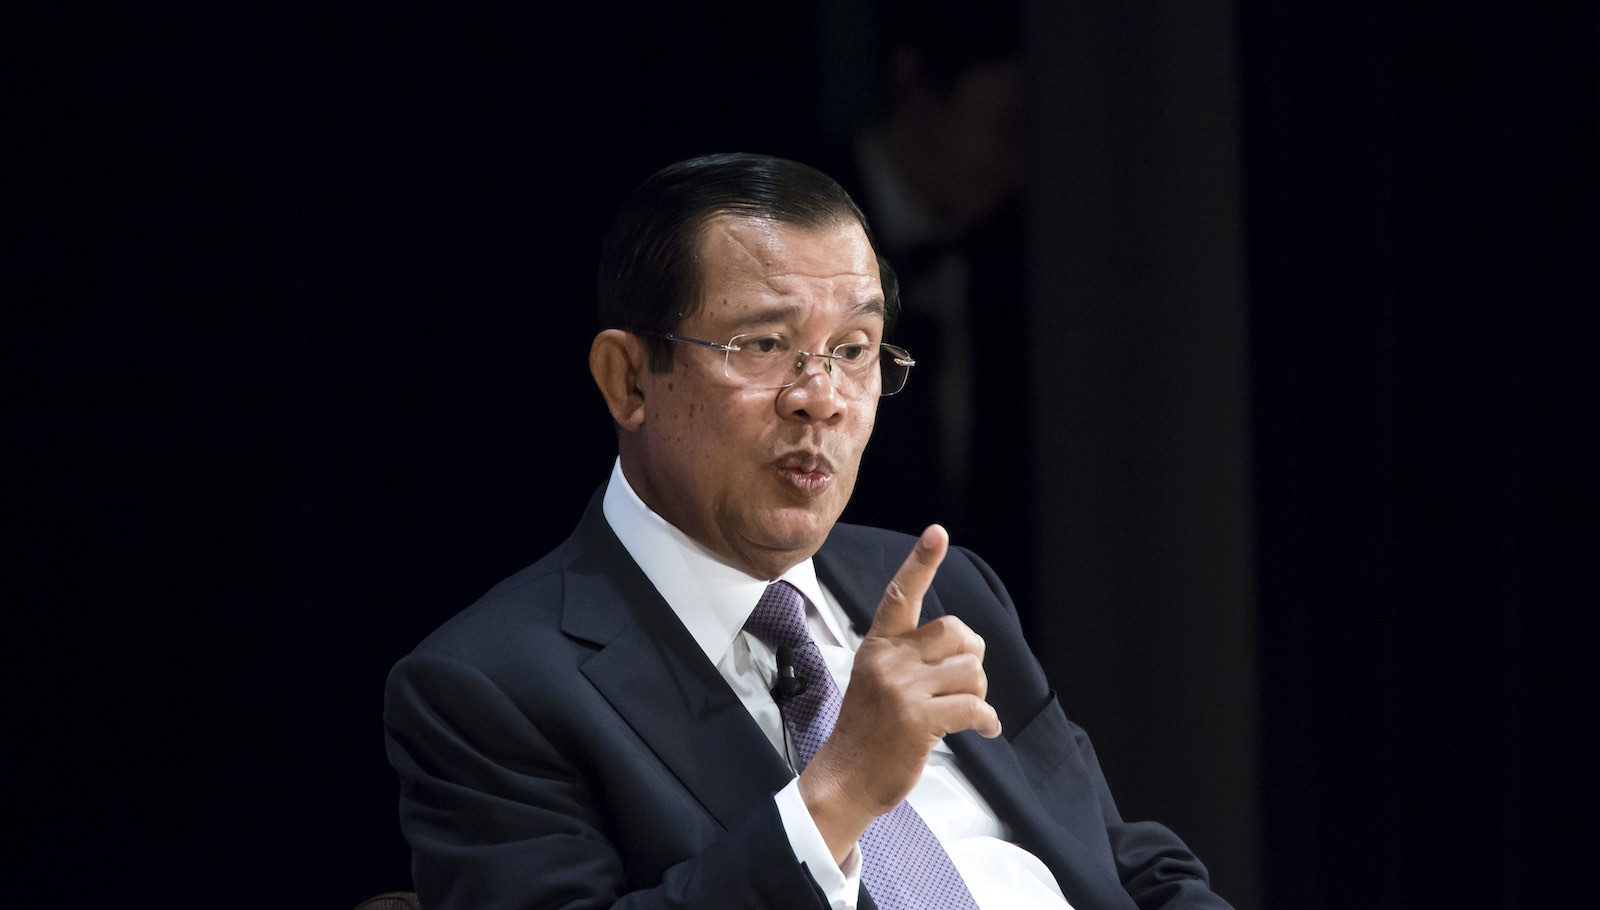 Cambodian Prime Minister Hun Sen at the Future of Asia Conference, Tokyo, 30 May 2019 (Photo: Tomohiro Ohsumi/Getty Images)